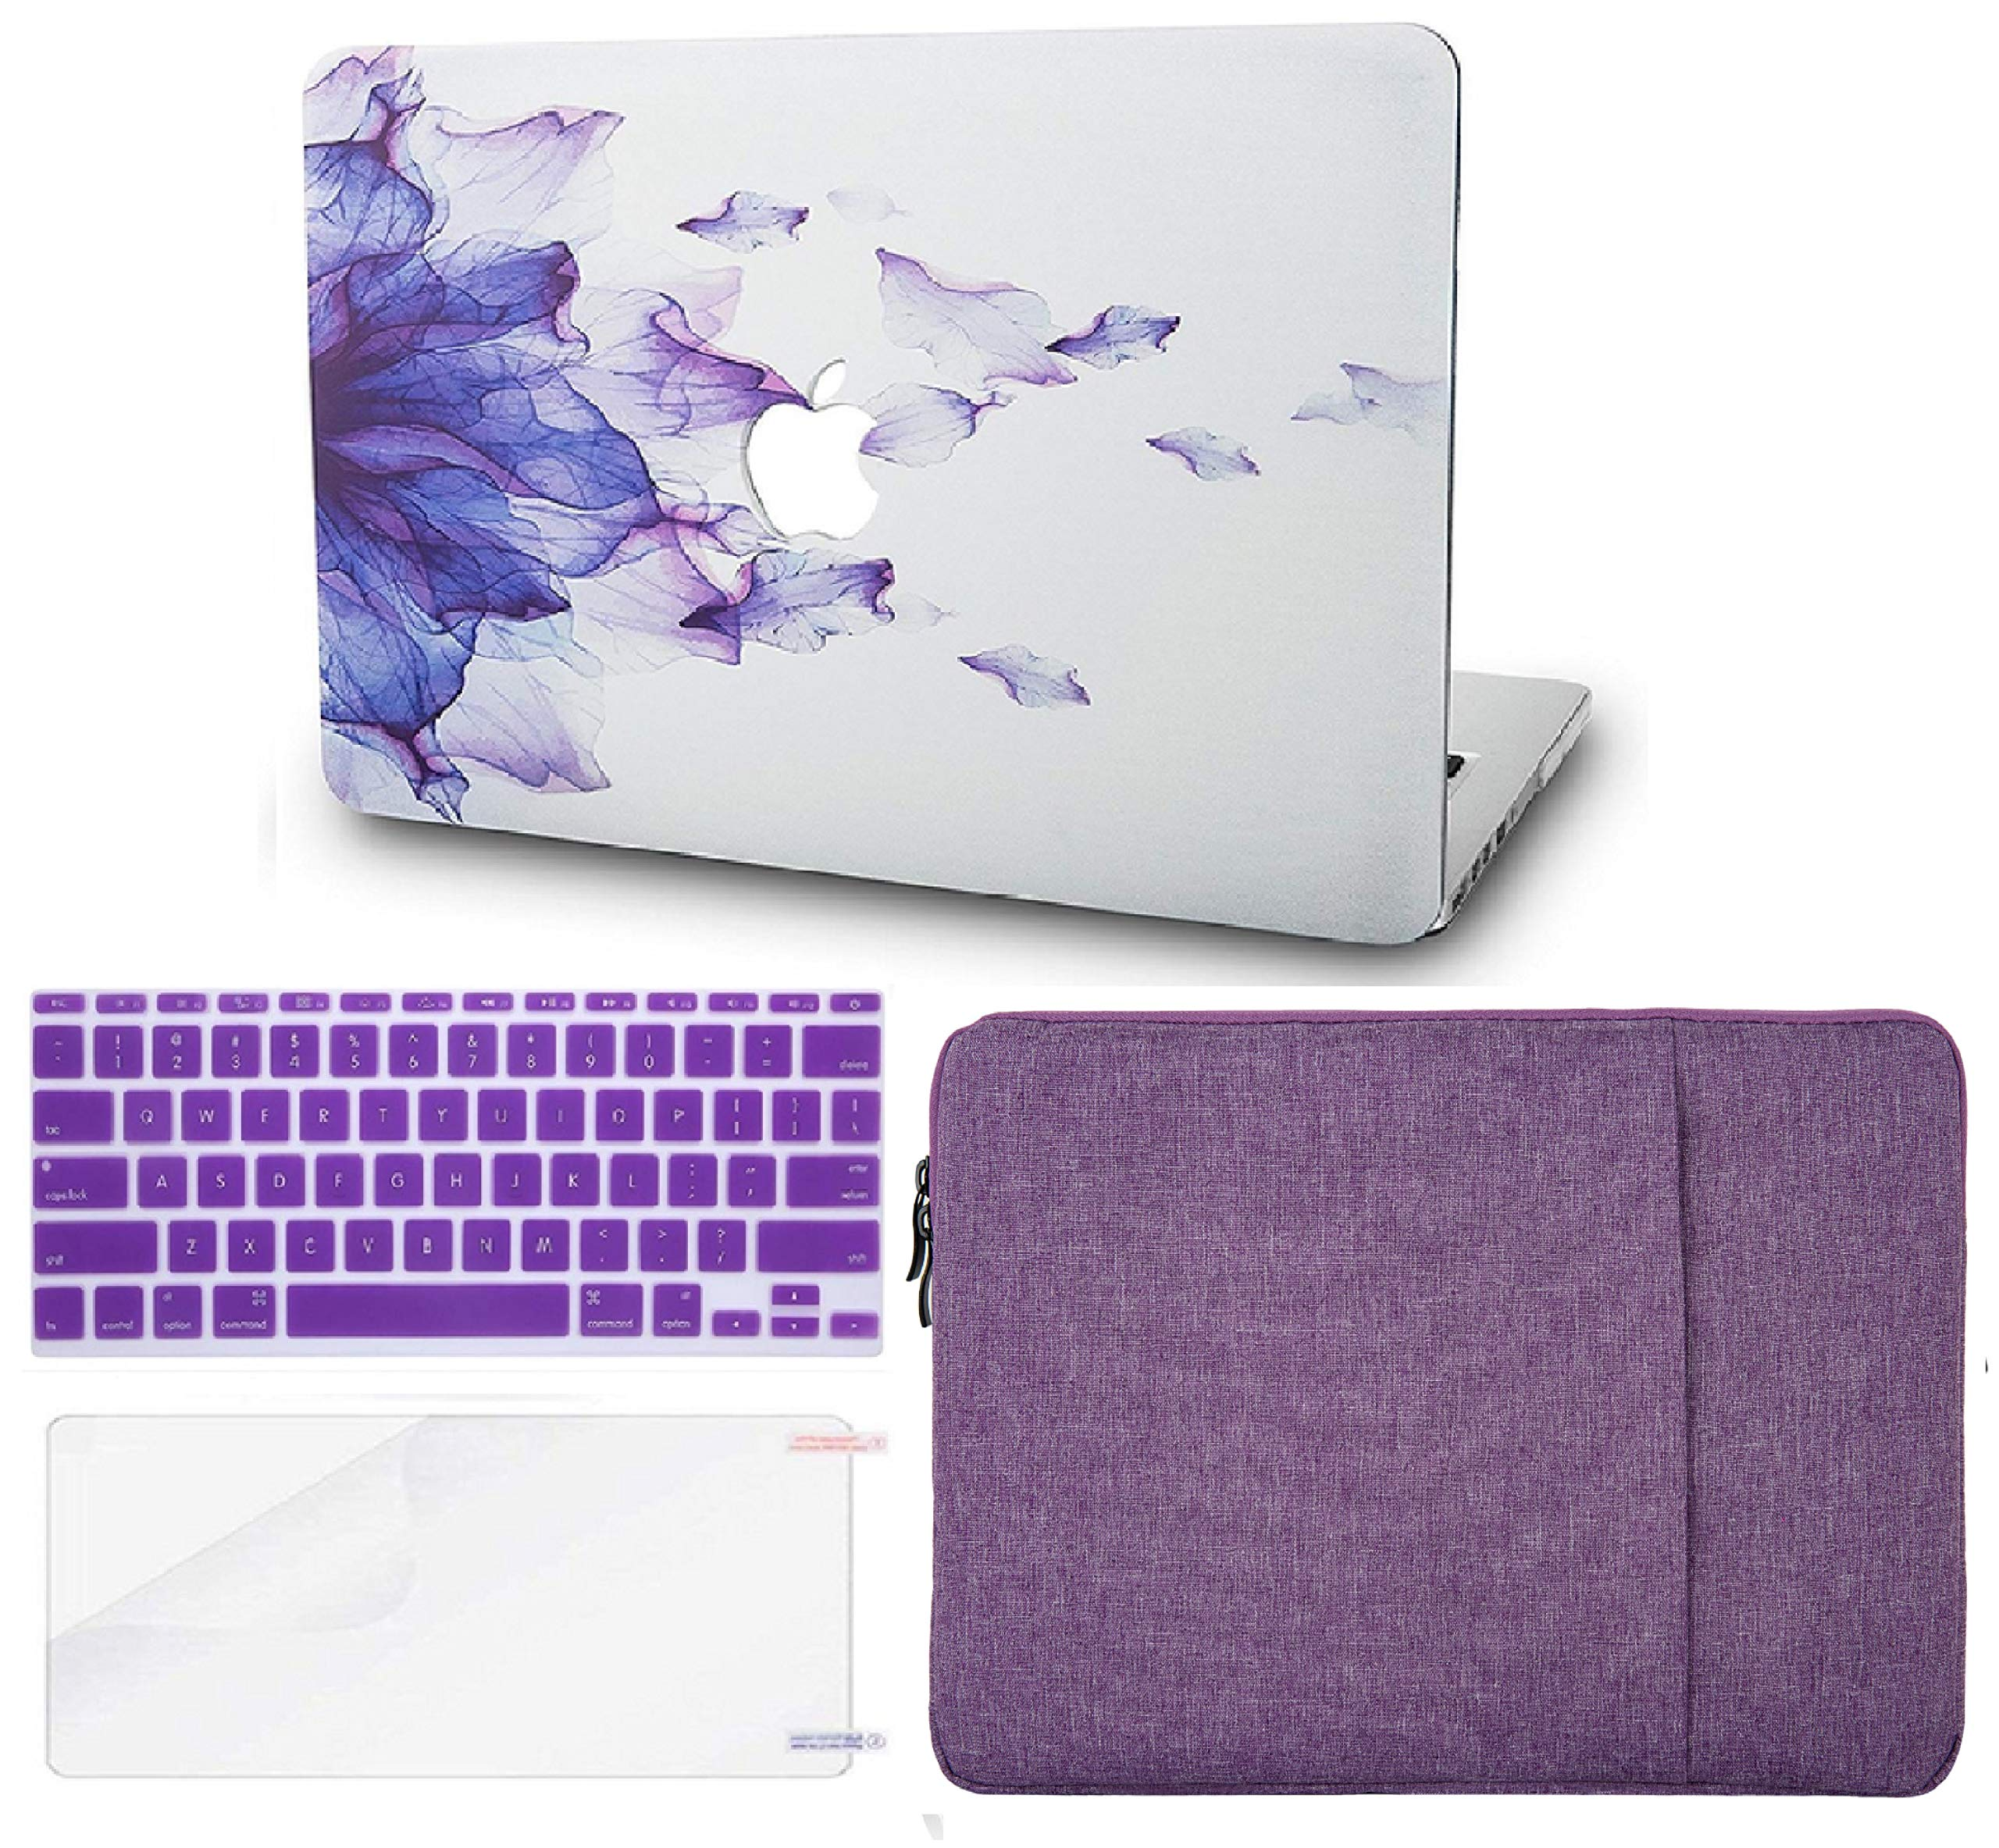 KECC Laptop Case for New MacBook Air 13'' Retina (2019/2018, Touch ID) w/Keyboard Cover + Sleeve + Screen Protector (4 in 1 Bundle) Plastic Hard Shell Case A1932 (Purple Flower) by KECC